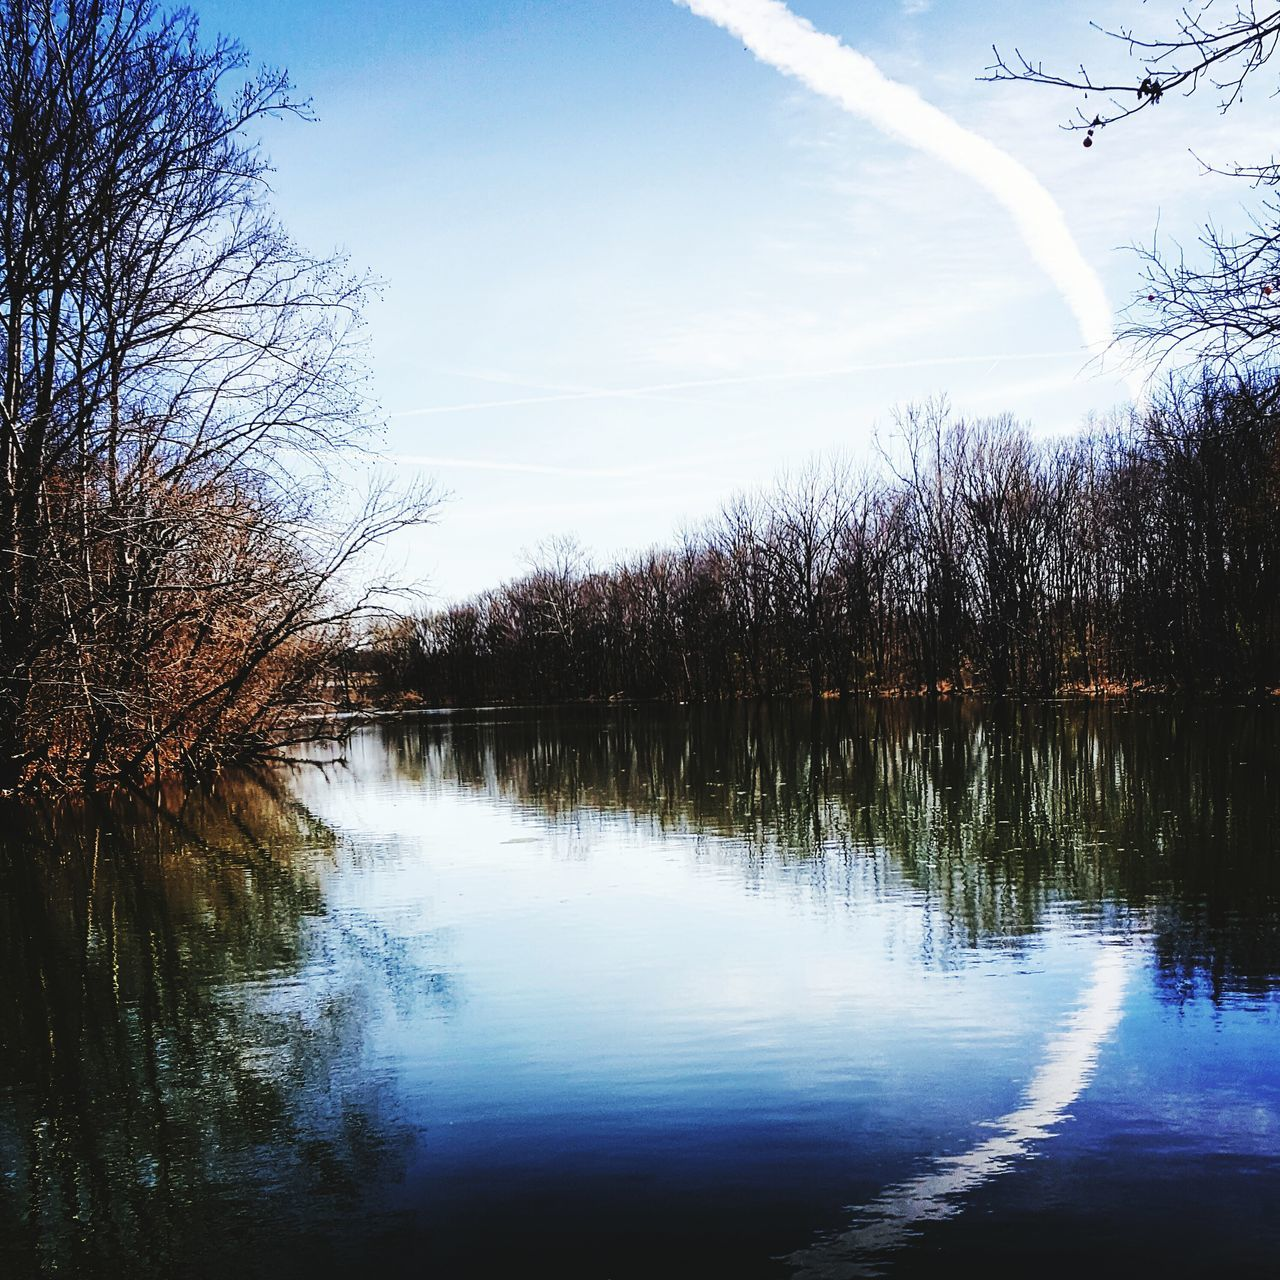 reflection, tree, water, lake, tranquil scene, beauty in nature, nature, tranquility, scenics, no people, sky, outdoors, day, bare tree